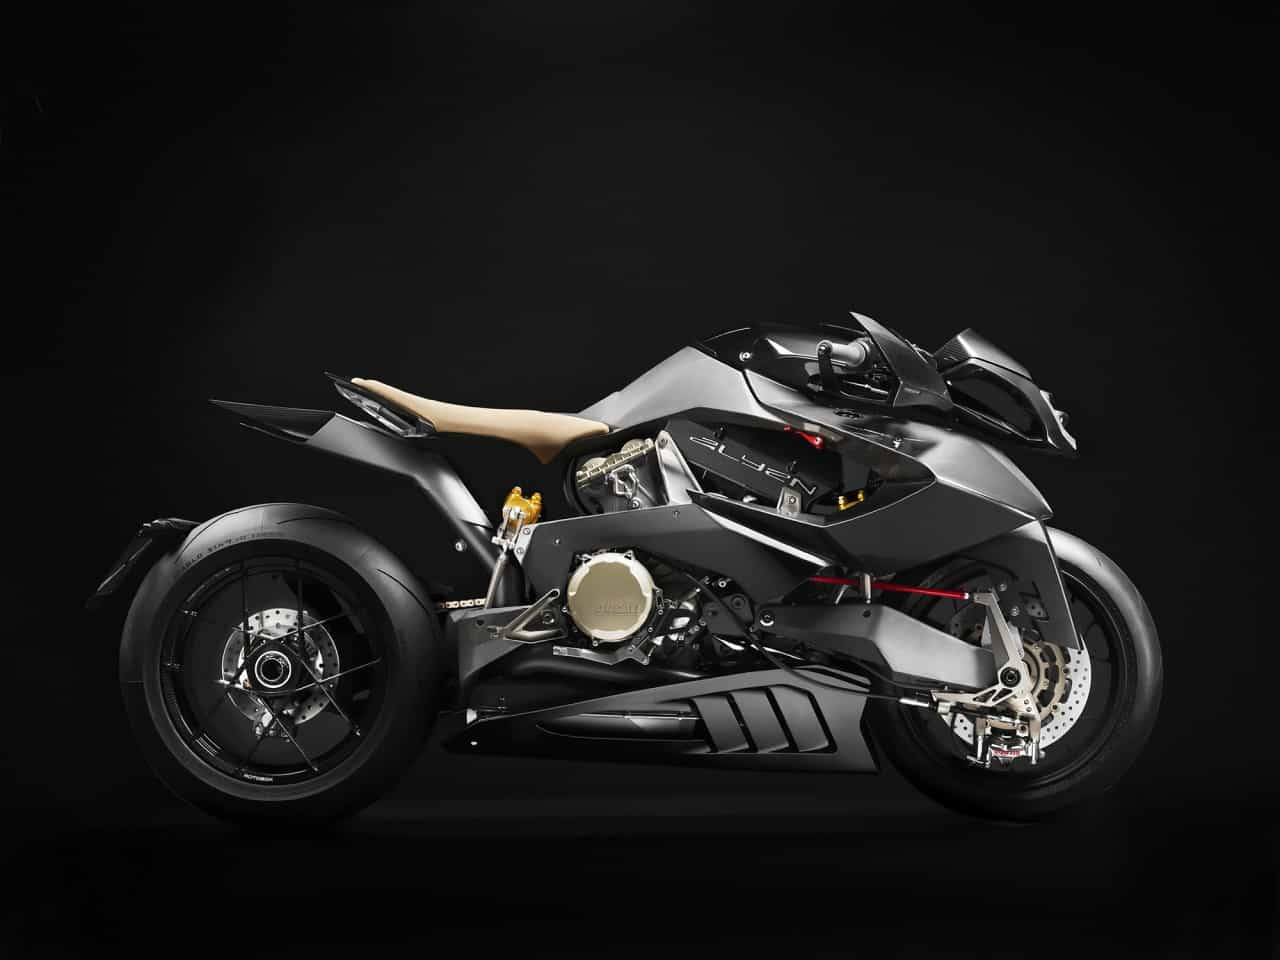 Get ready for the new Vyrus: the 202-horsepower Ducati-powered Alyen 988 bike